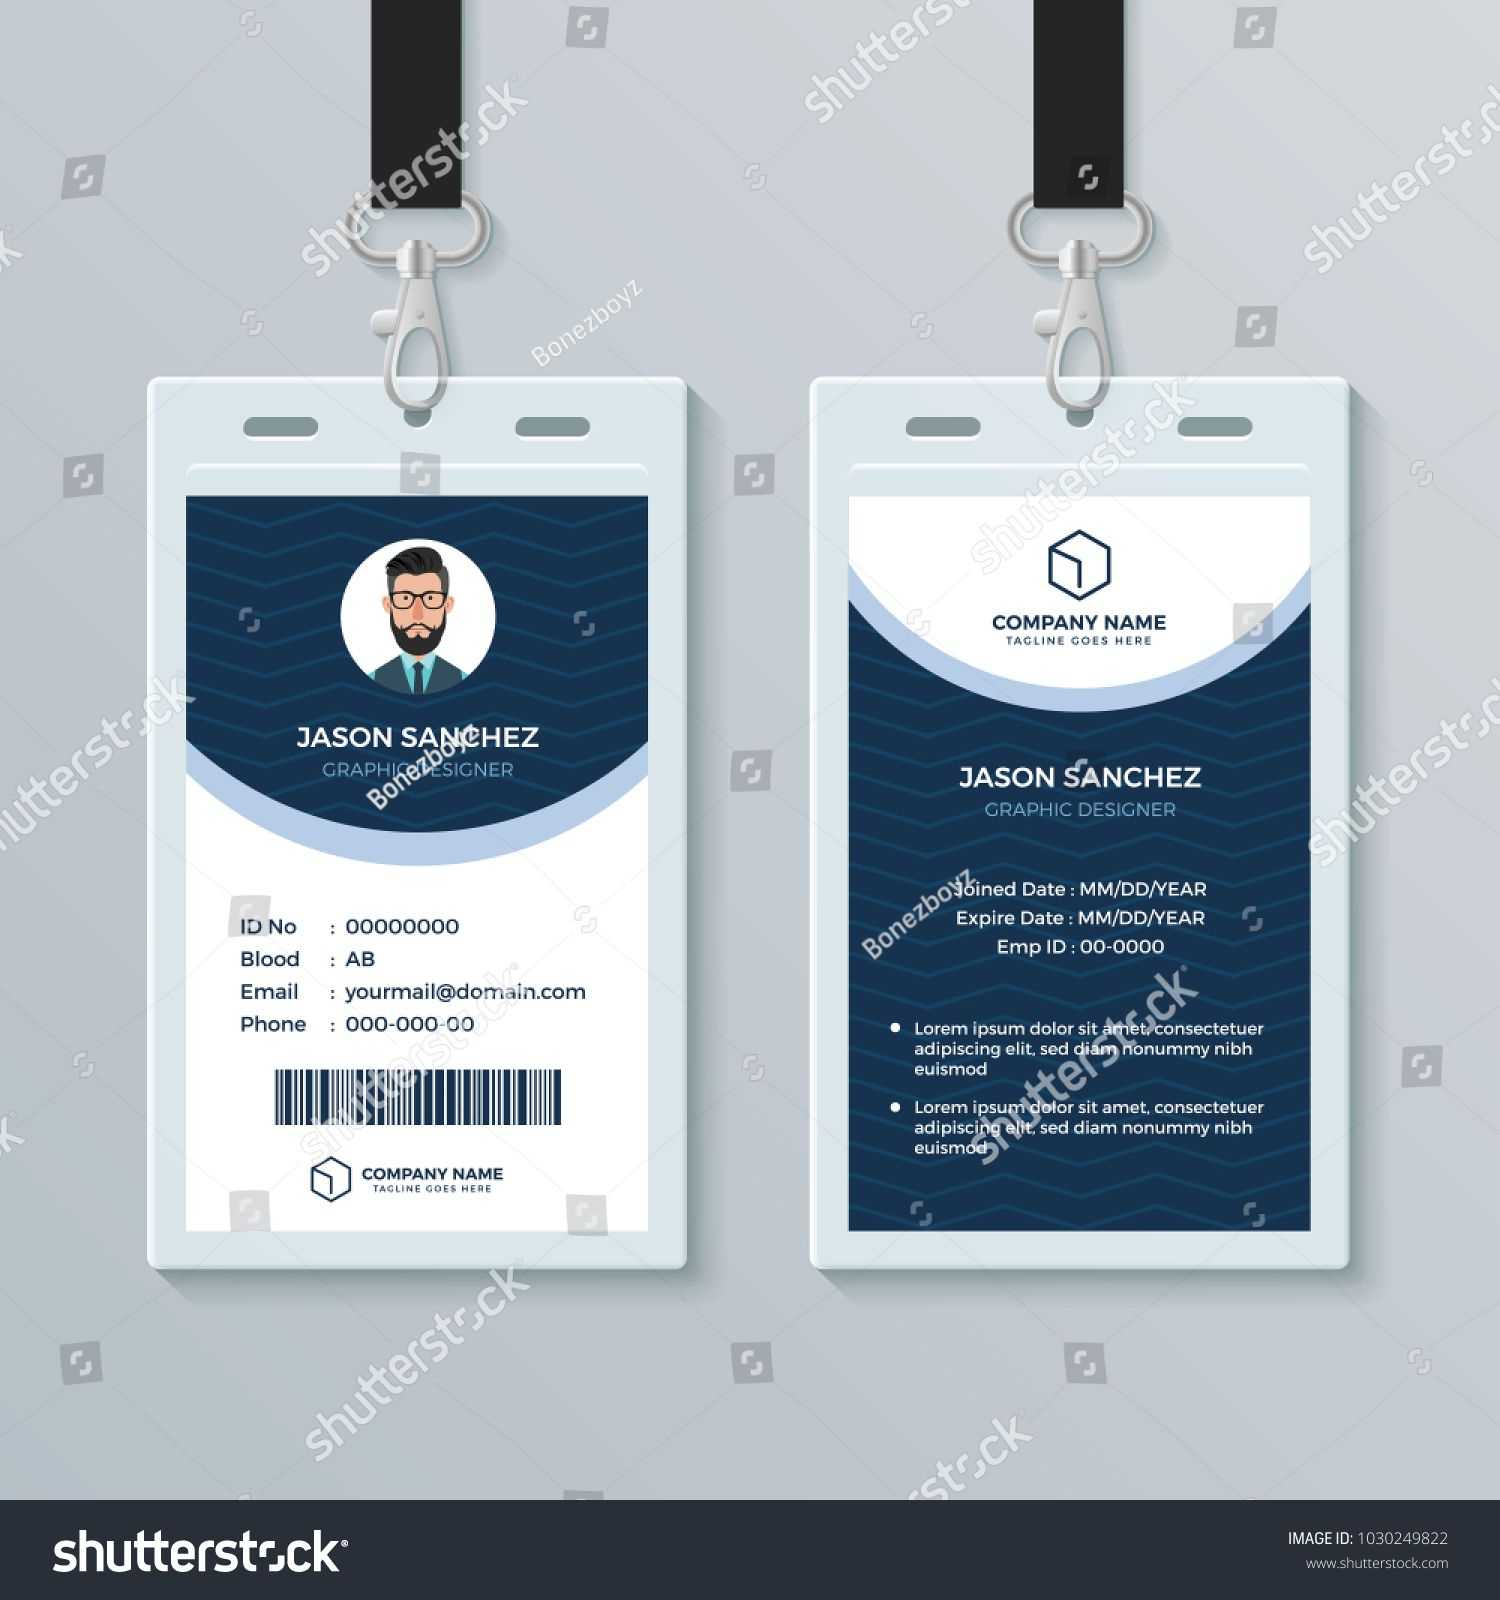 003 Free Id Card Template Fascinating Ideas Student Download In Free Id Card Template Word